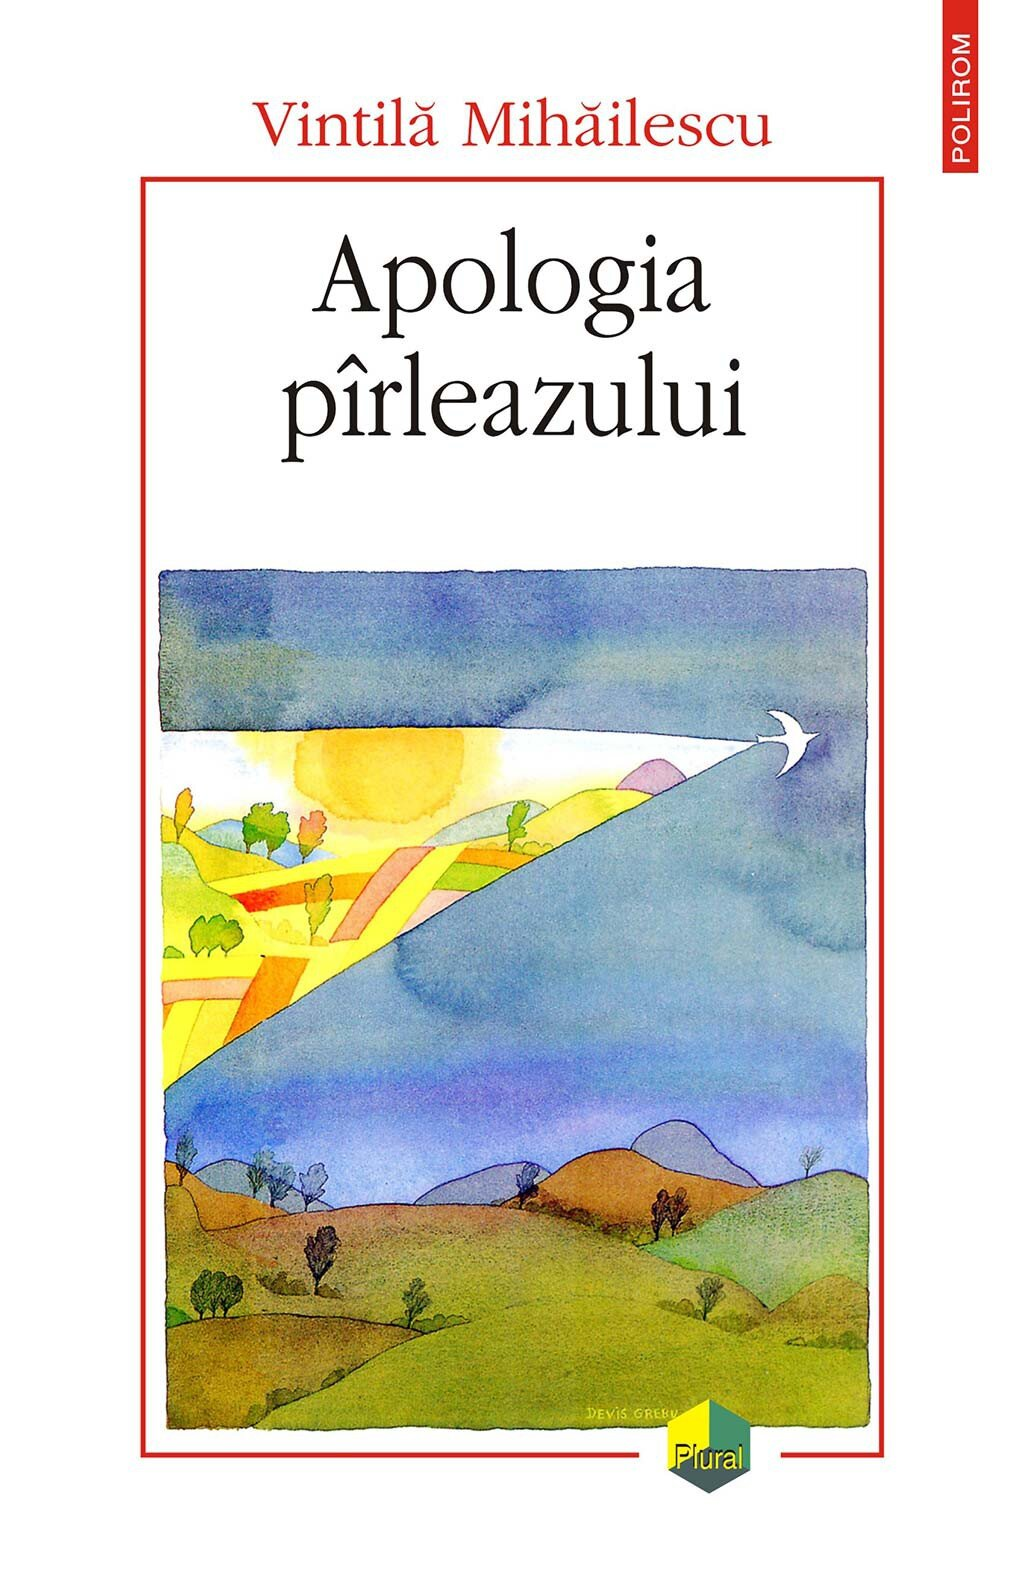 Apologia pirleazului PDF (Download eBook)